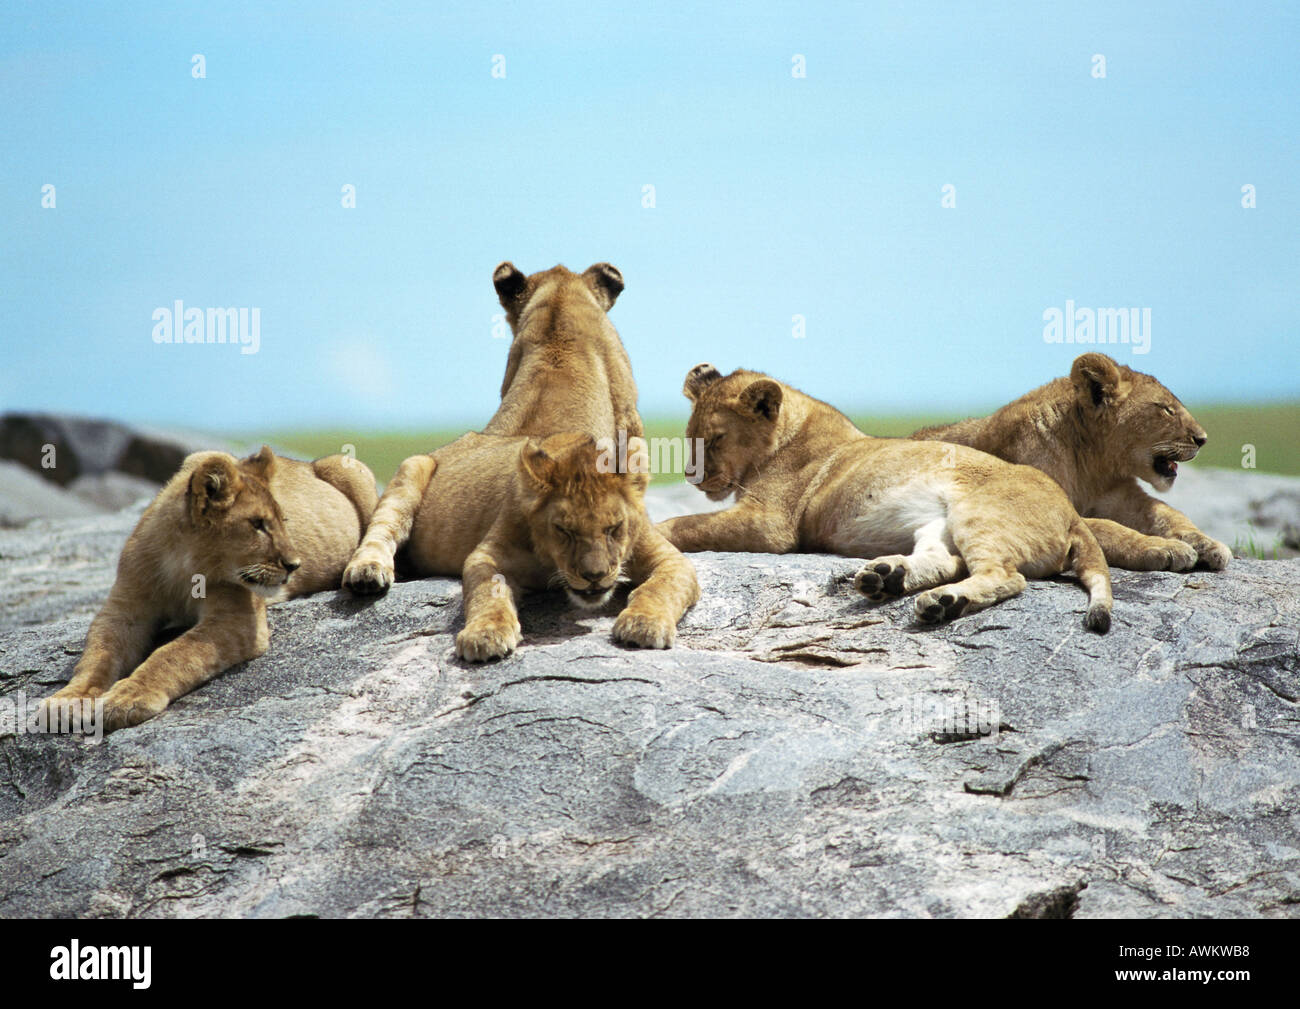 Lion cubs (Panthera leo) lying on rock Photo Stock